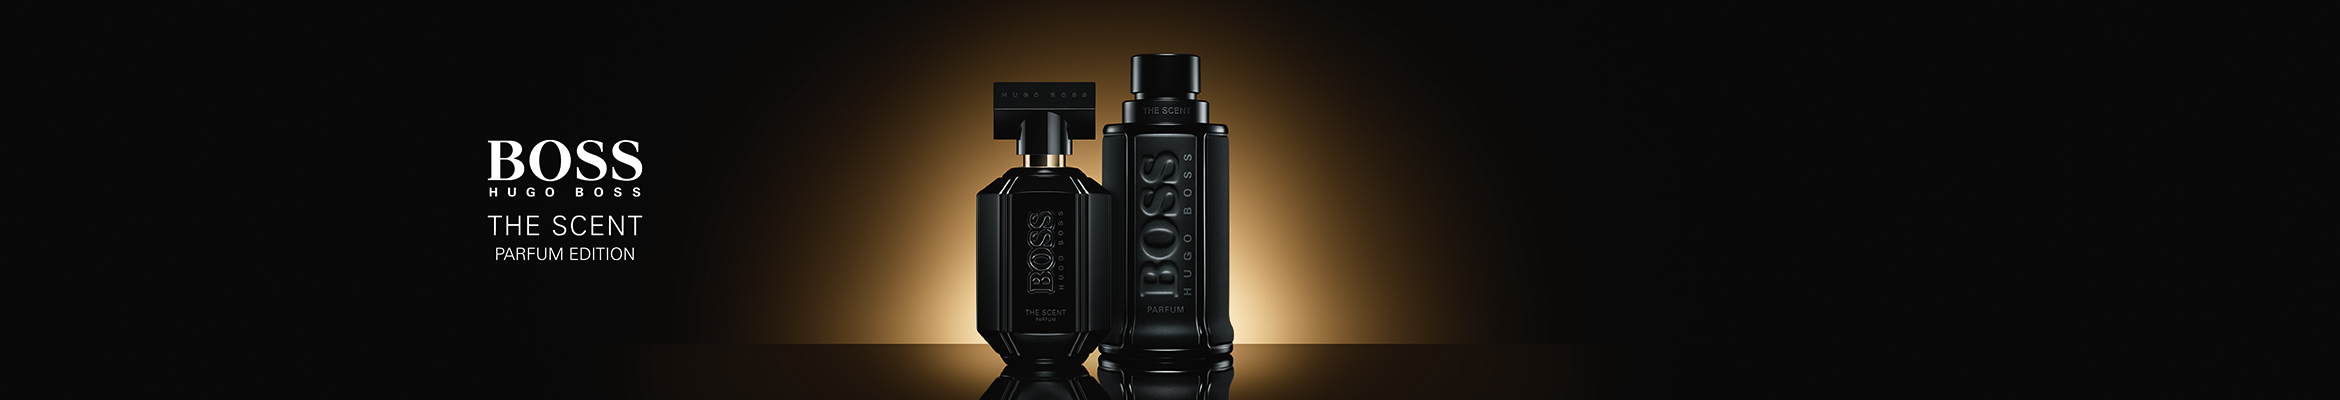 TheScent_Boss_SS18